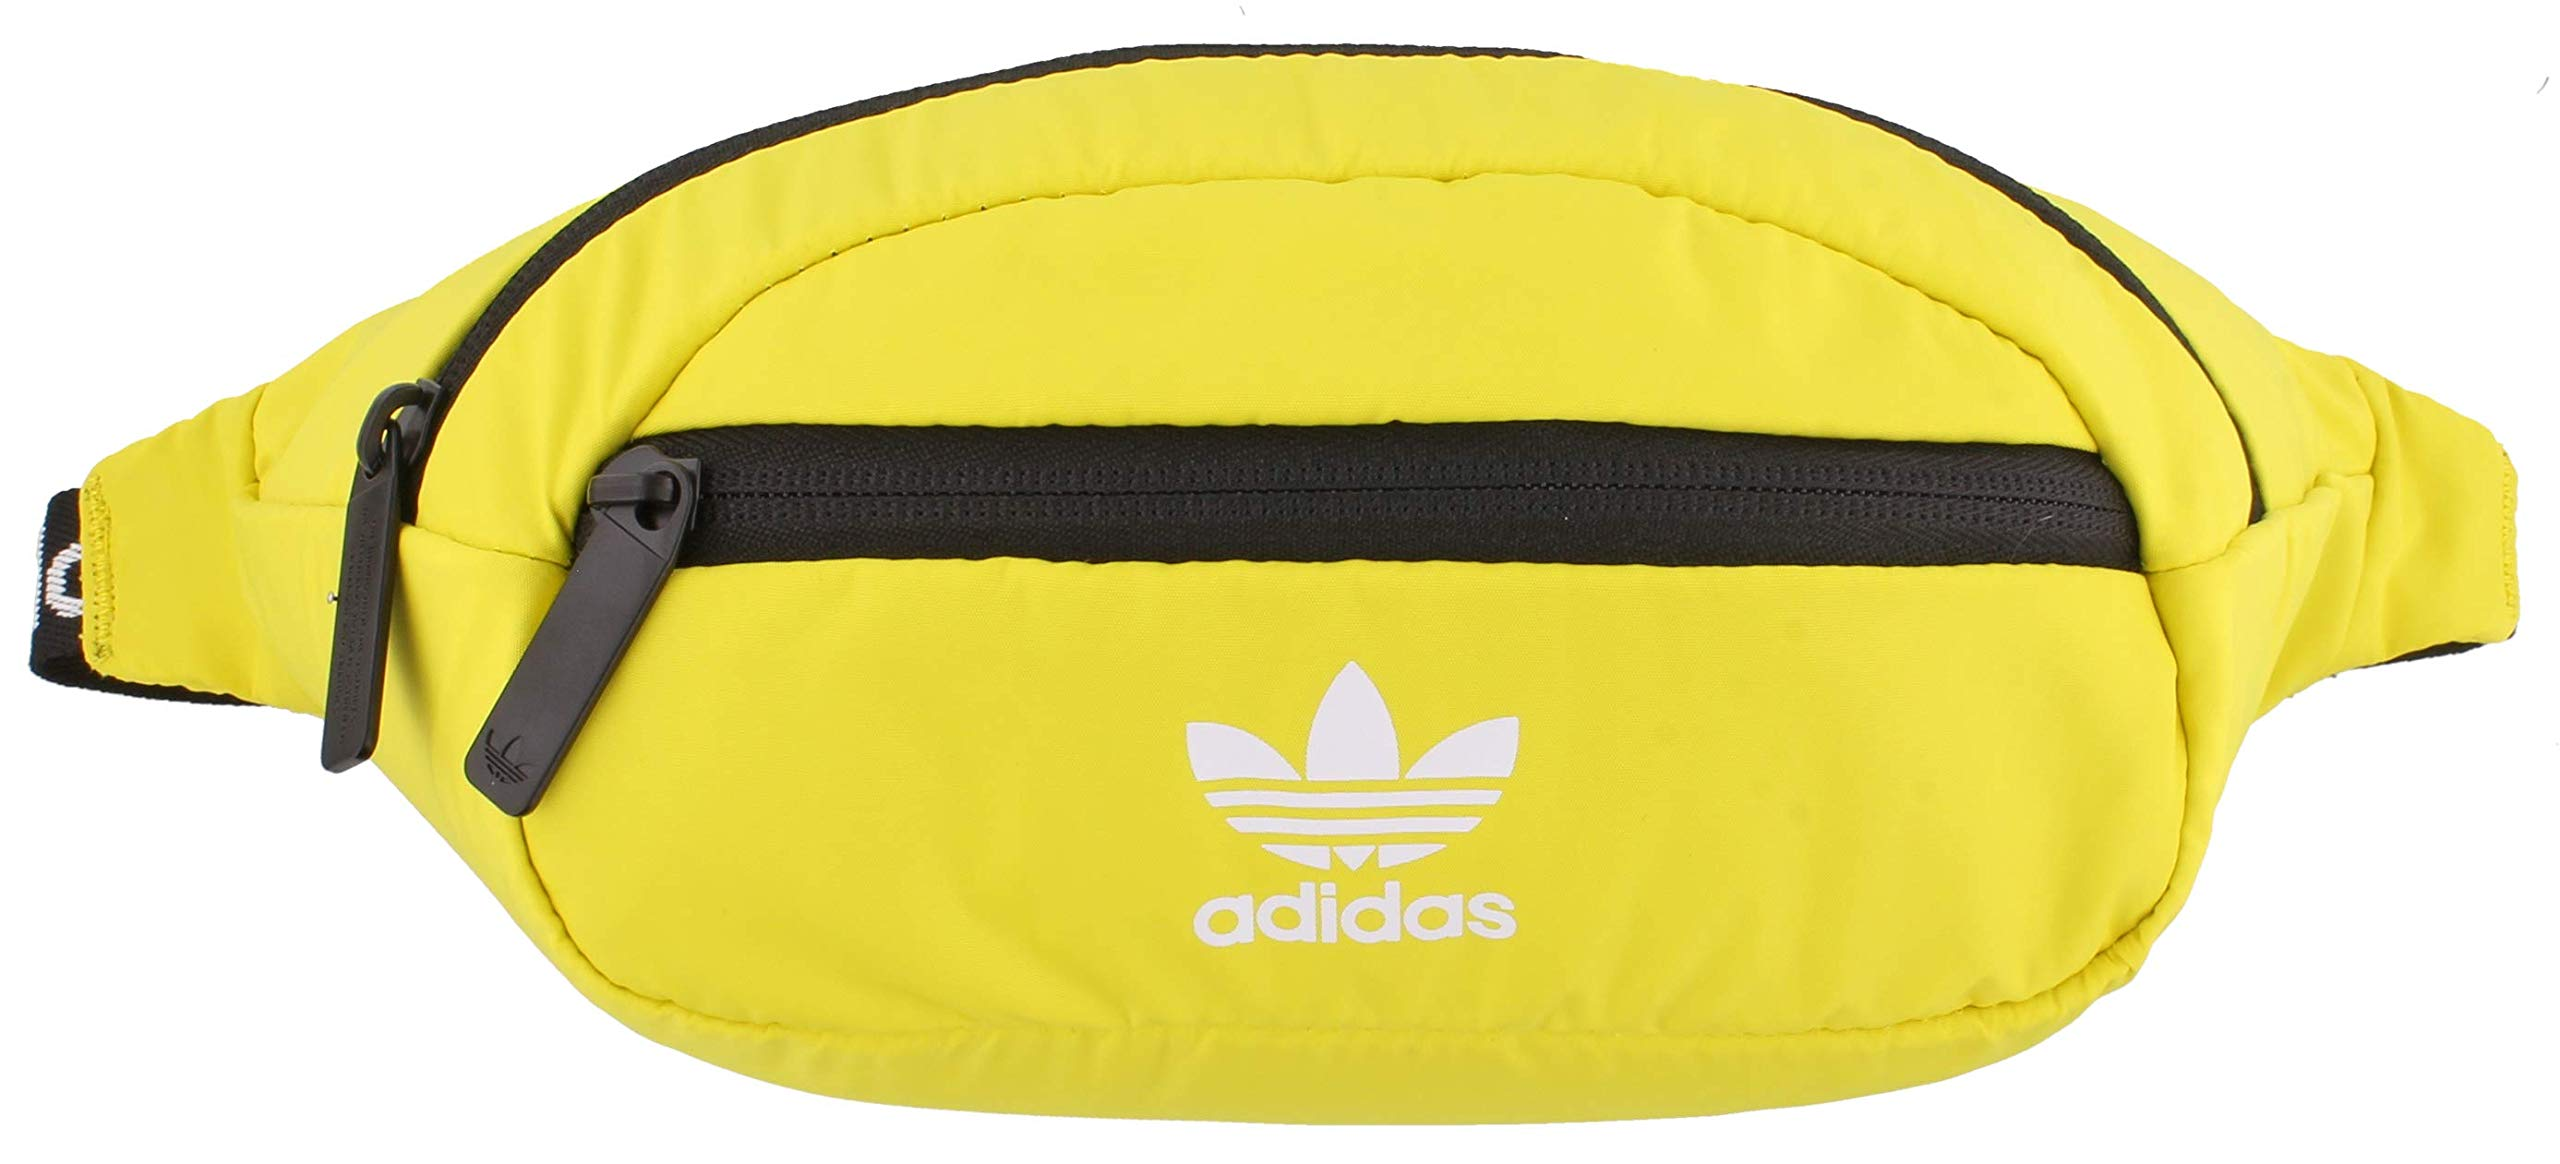 adidas Originals Unisex National Waist Pack, Yellow, ONE SIZE by adidas Originals